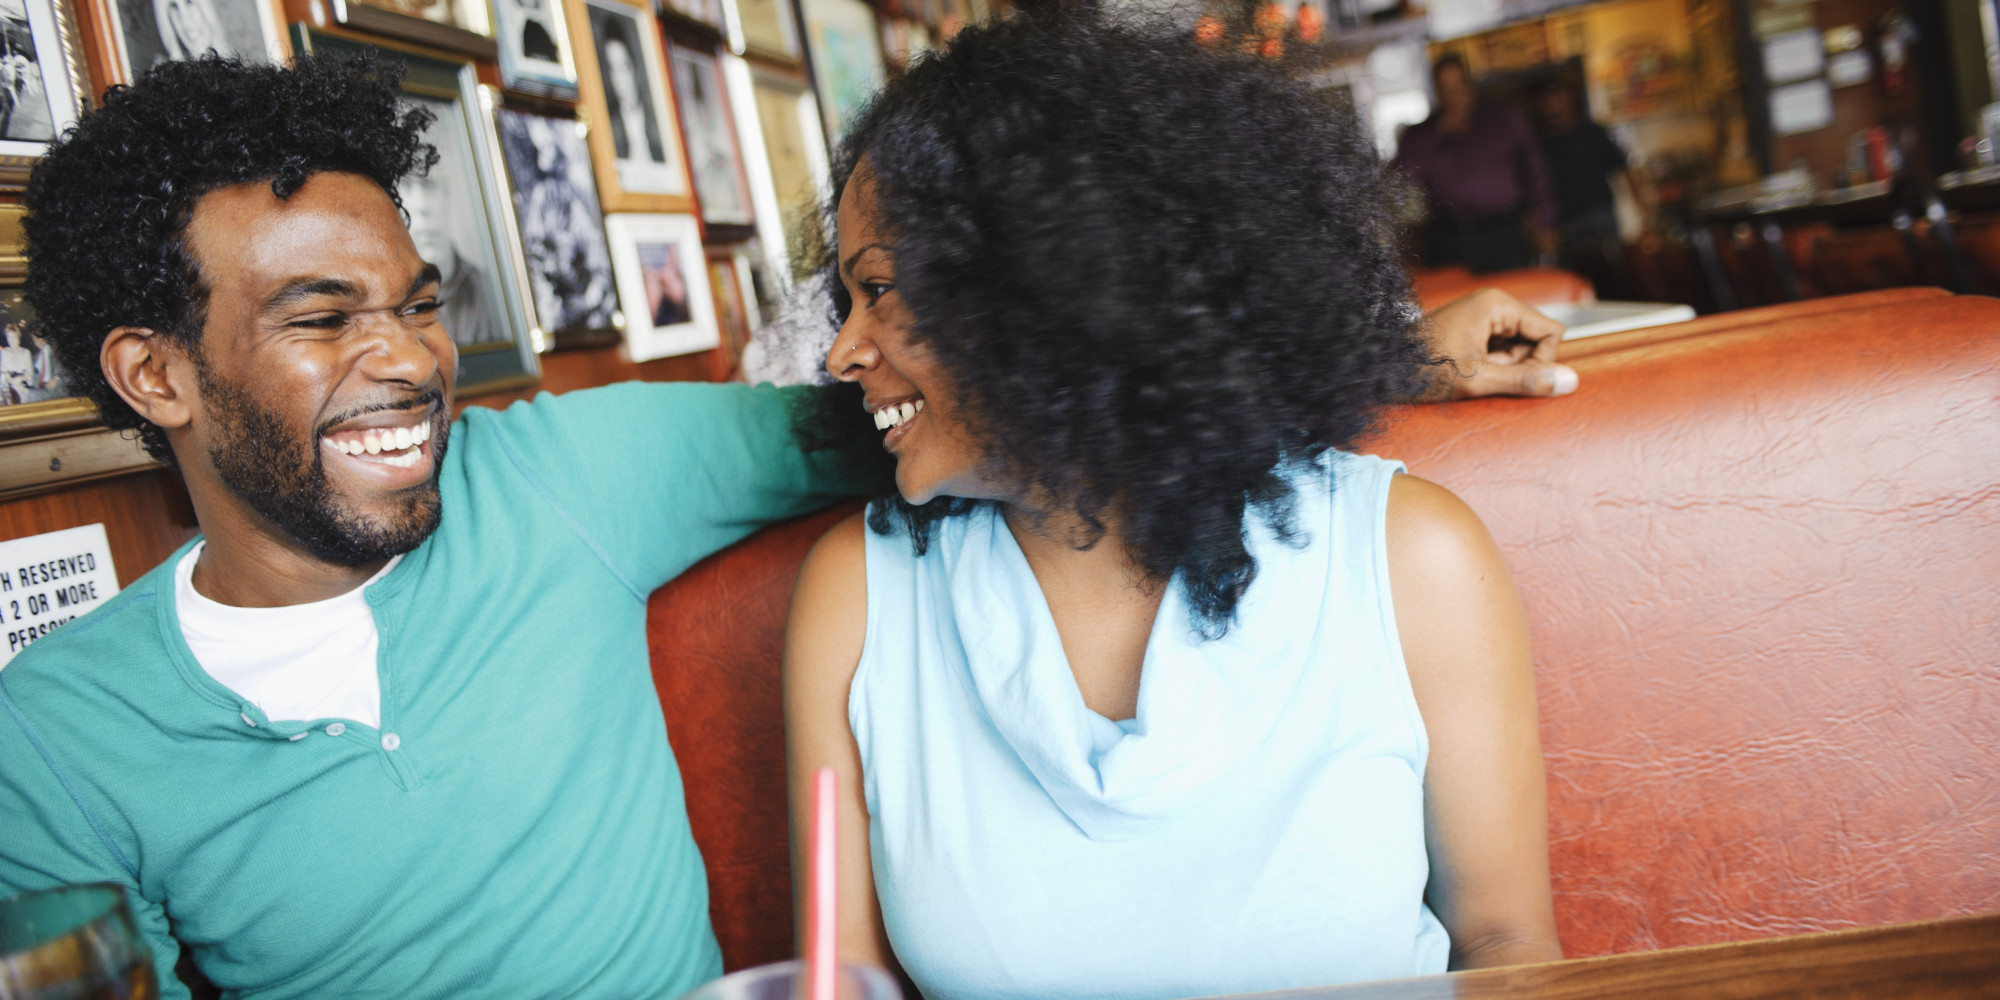 walkerton black single women As a leader in black dating, we successfully bring together black singles from around the world 100s of happy men and women have met their soul mates on blackcupid and shared their stories with us check out the many success stories here .